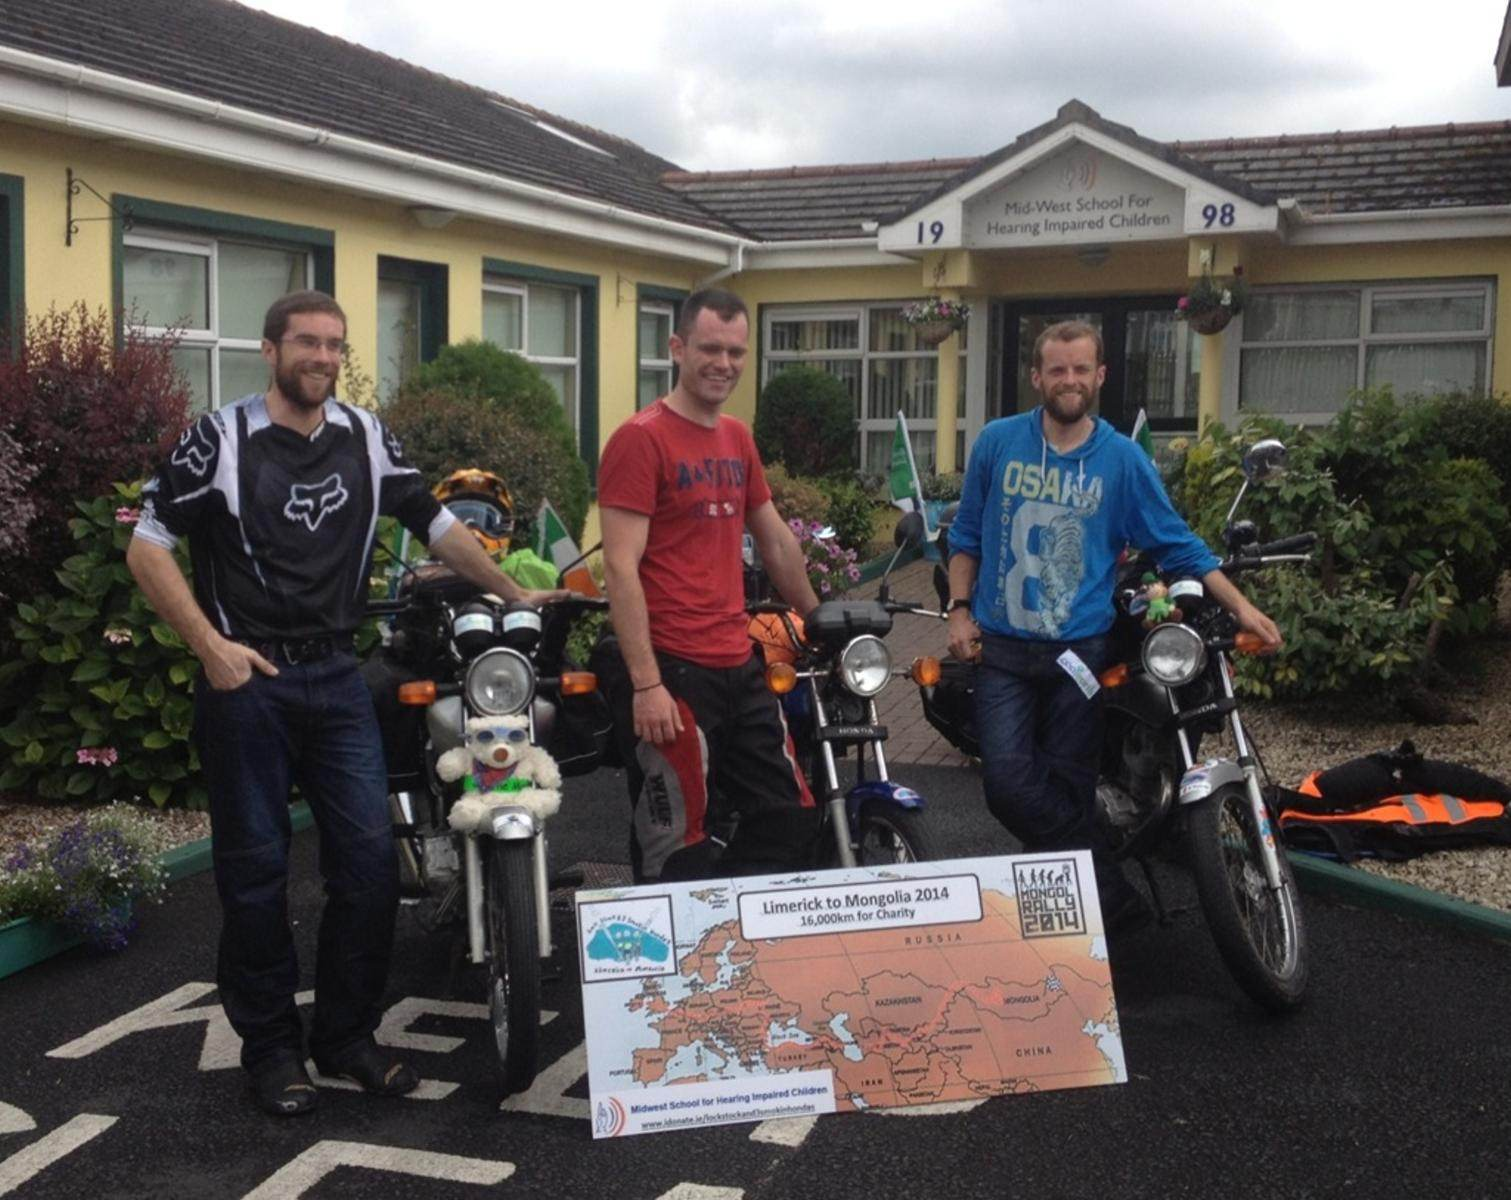 Limerick to Mongolia in aid of Mid-West School for the Hearing Impaired